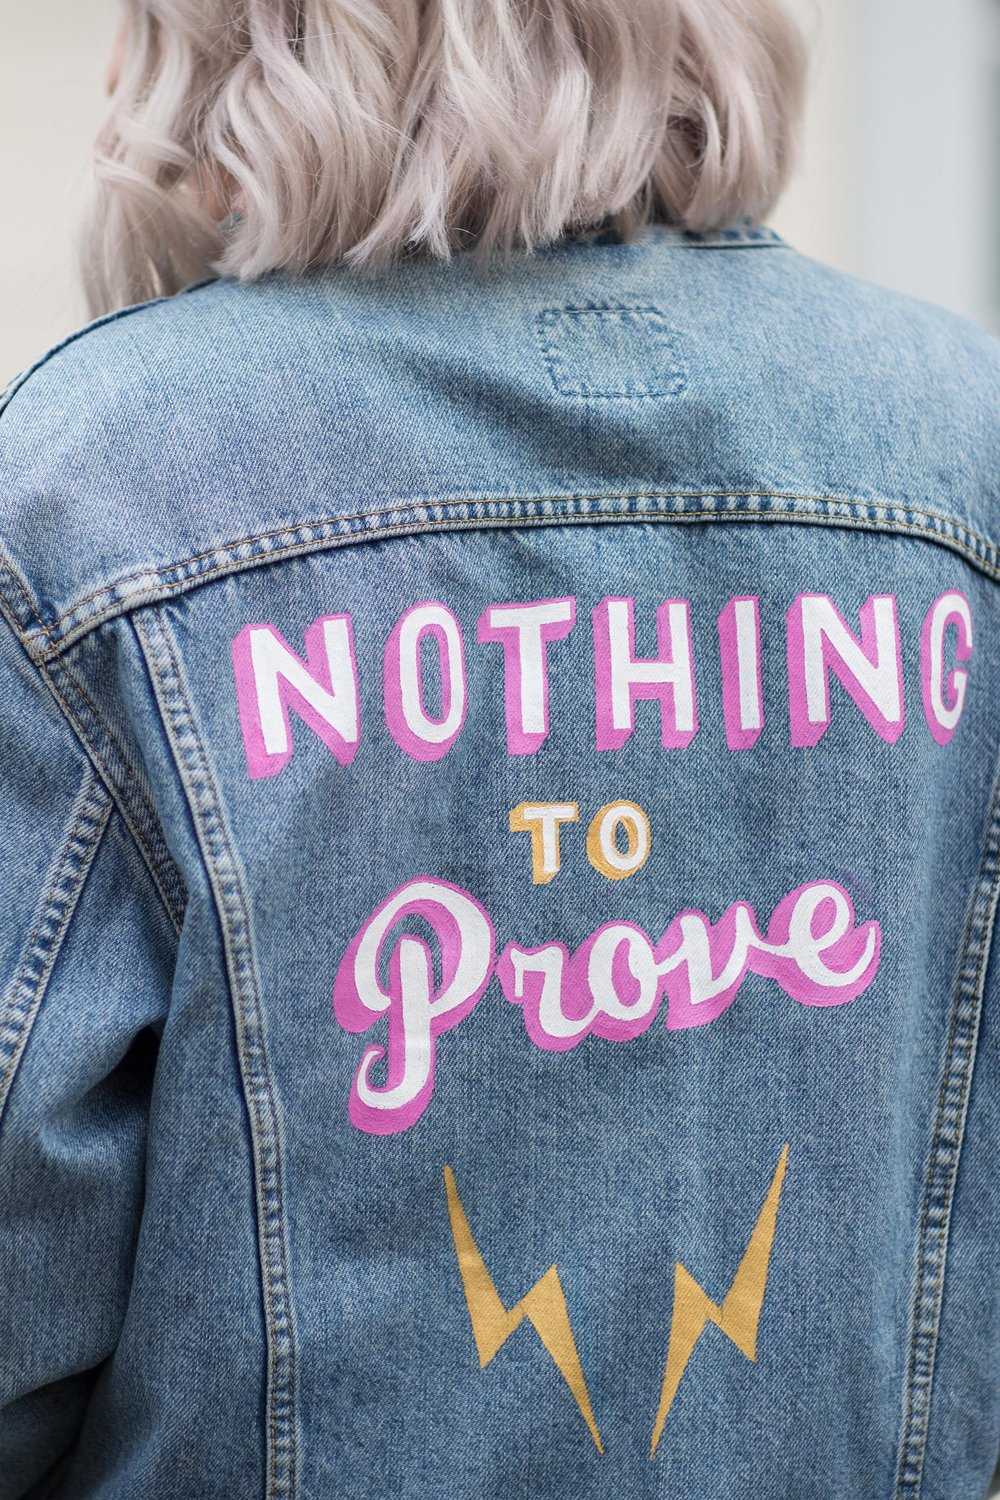 NothingtoProve - Jess Withey - Daisy Emerson - Customisation